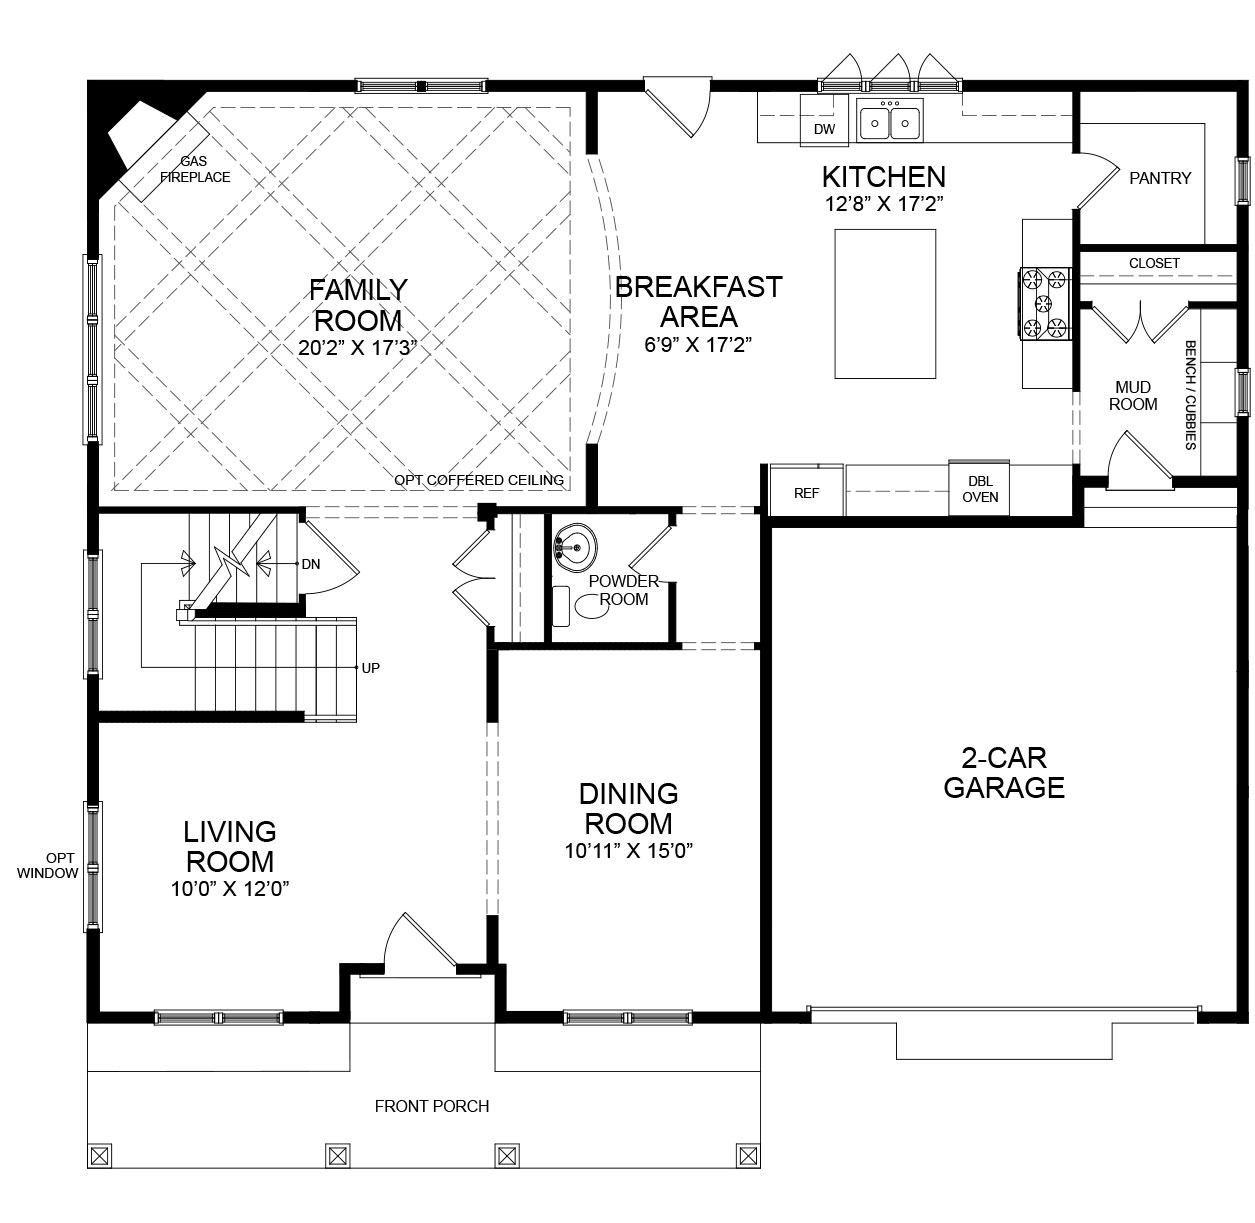 First floor plan for the Marlyn model home.